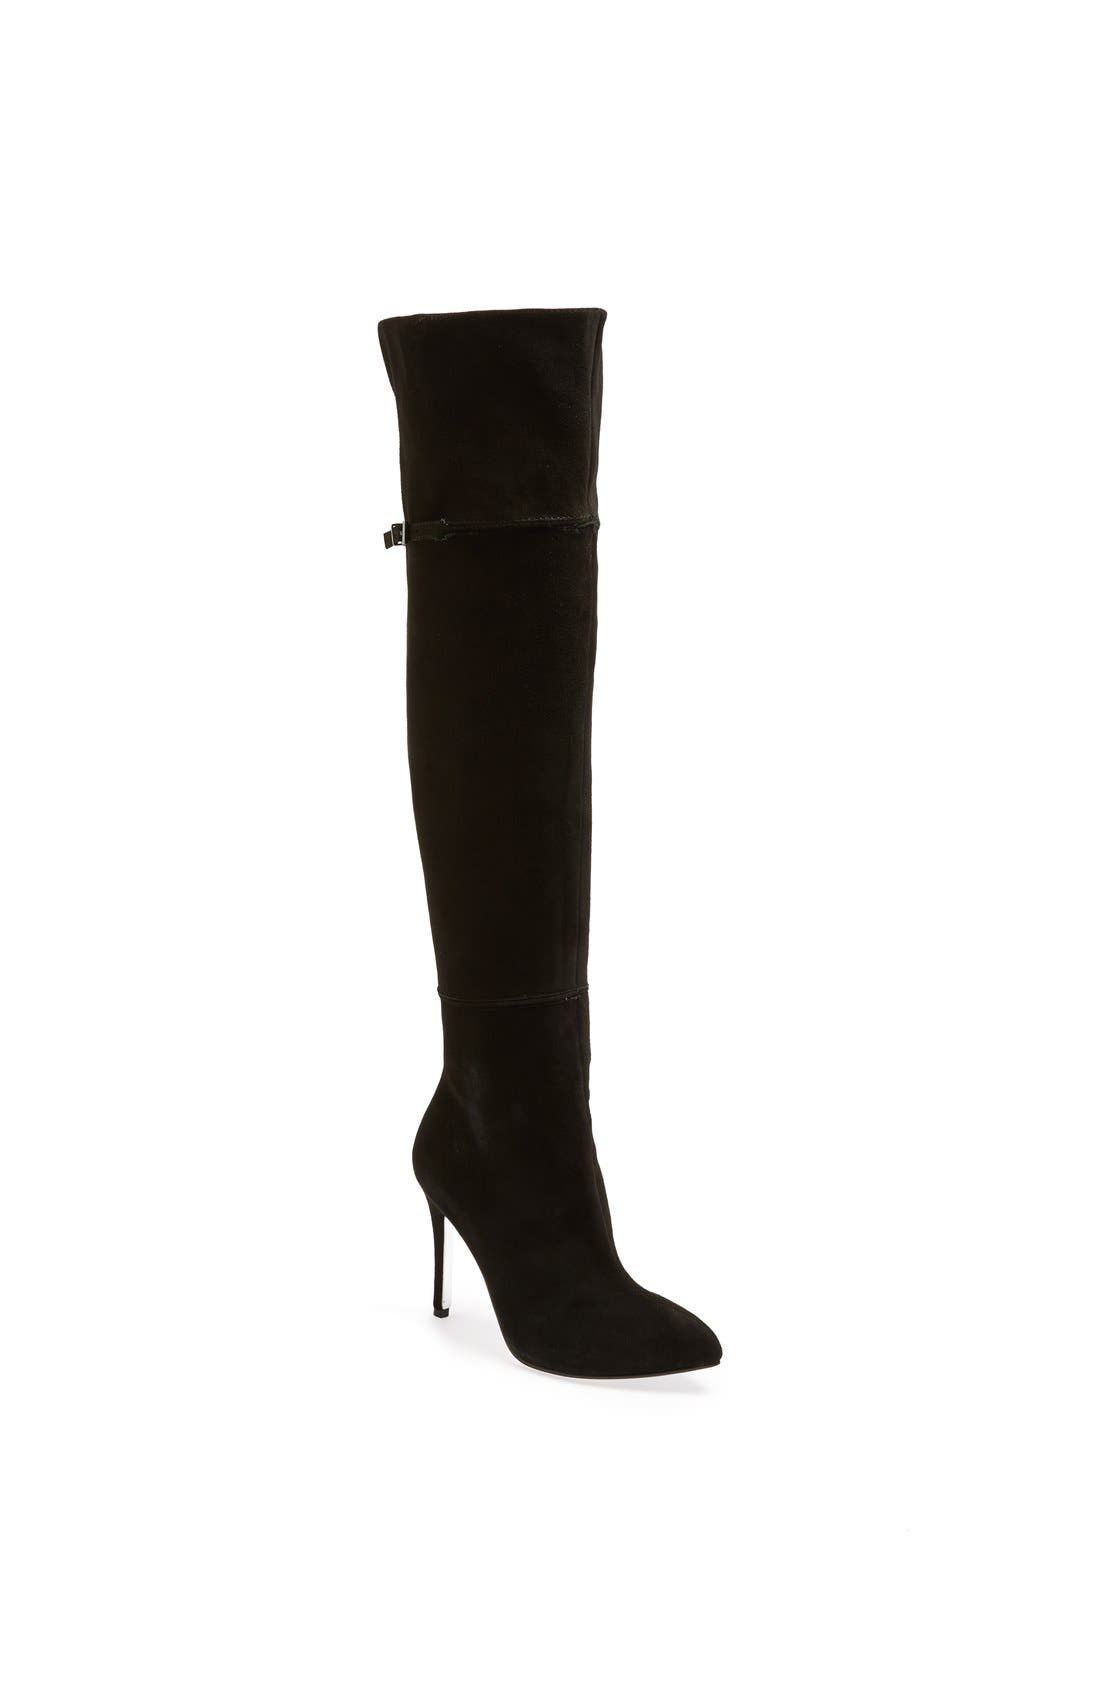 Alternate Image 1 Selected - Kristin Cavallari 'Cassie' Over the Knee Boot